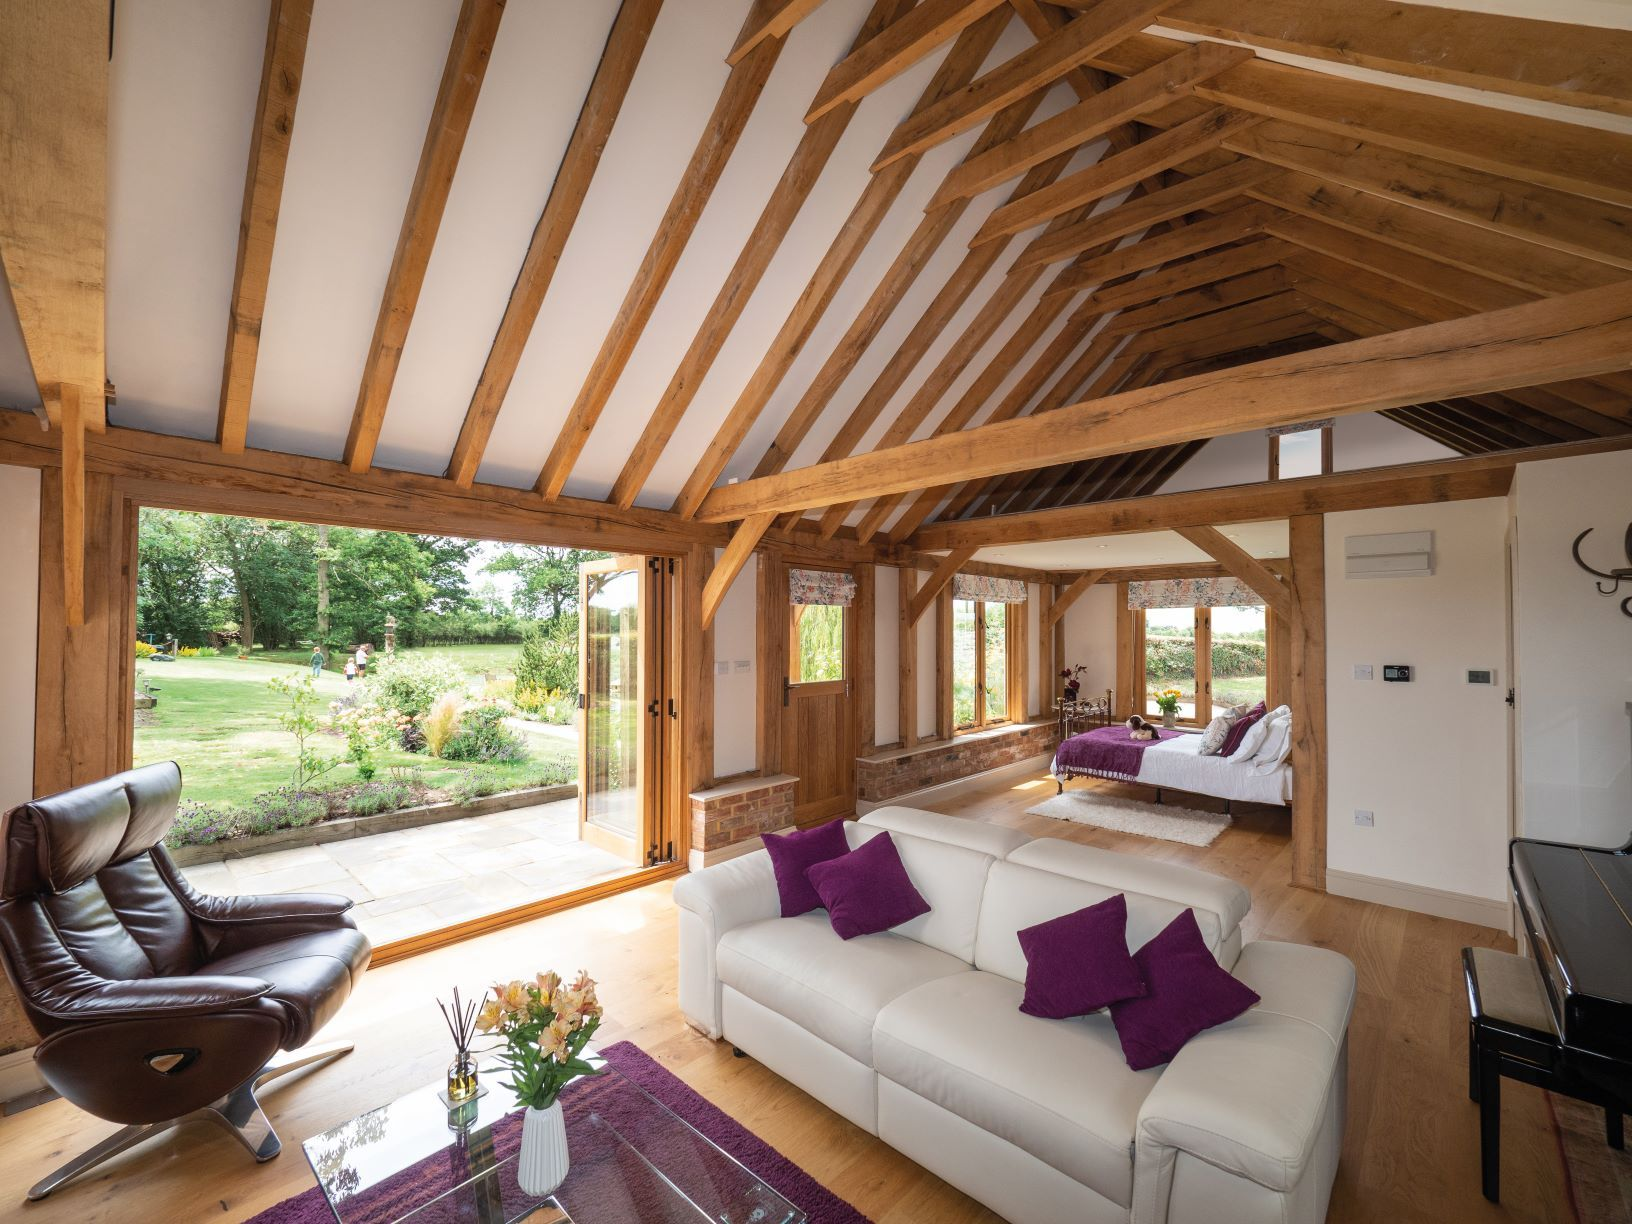 Each of our annexe projects are bespoke and designed to